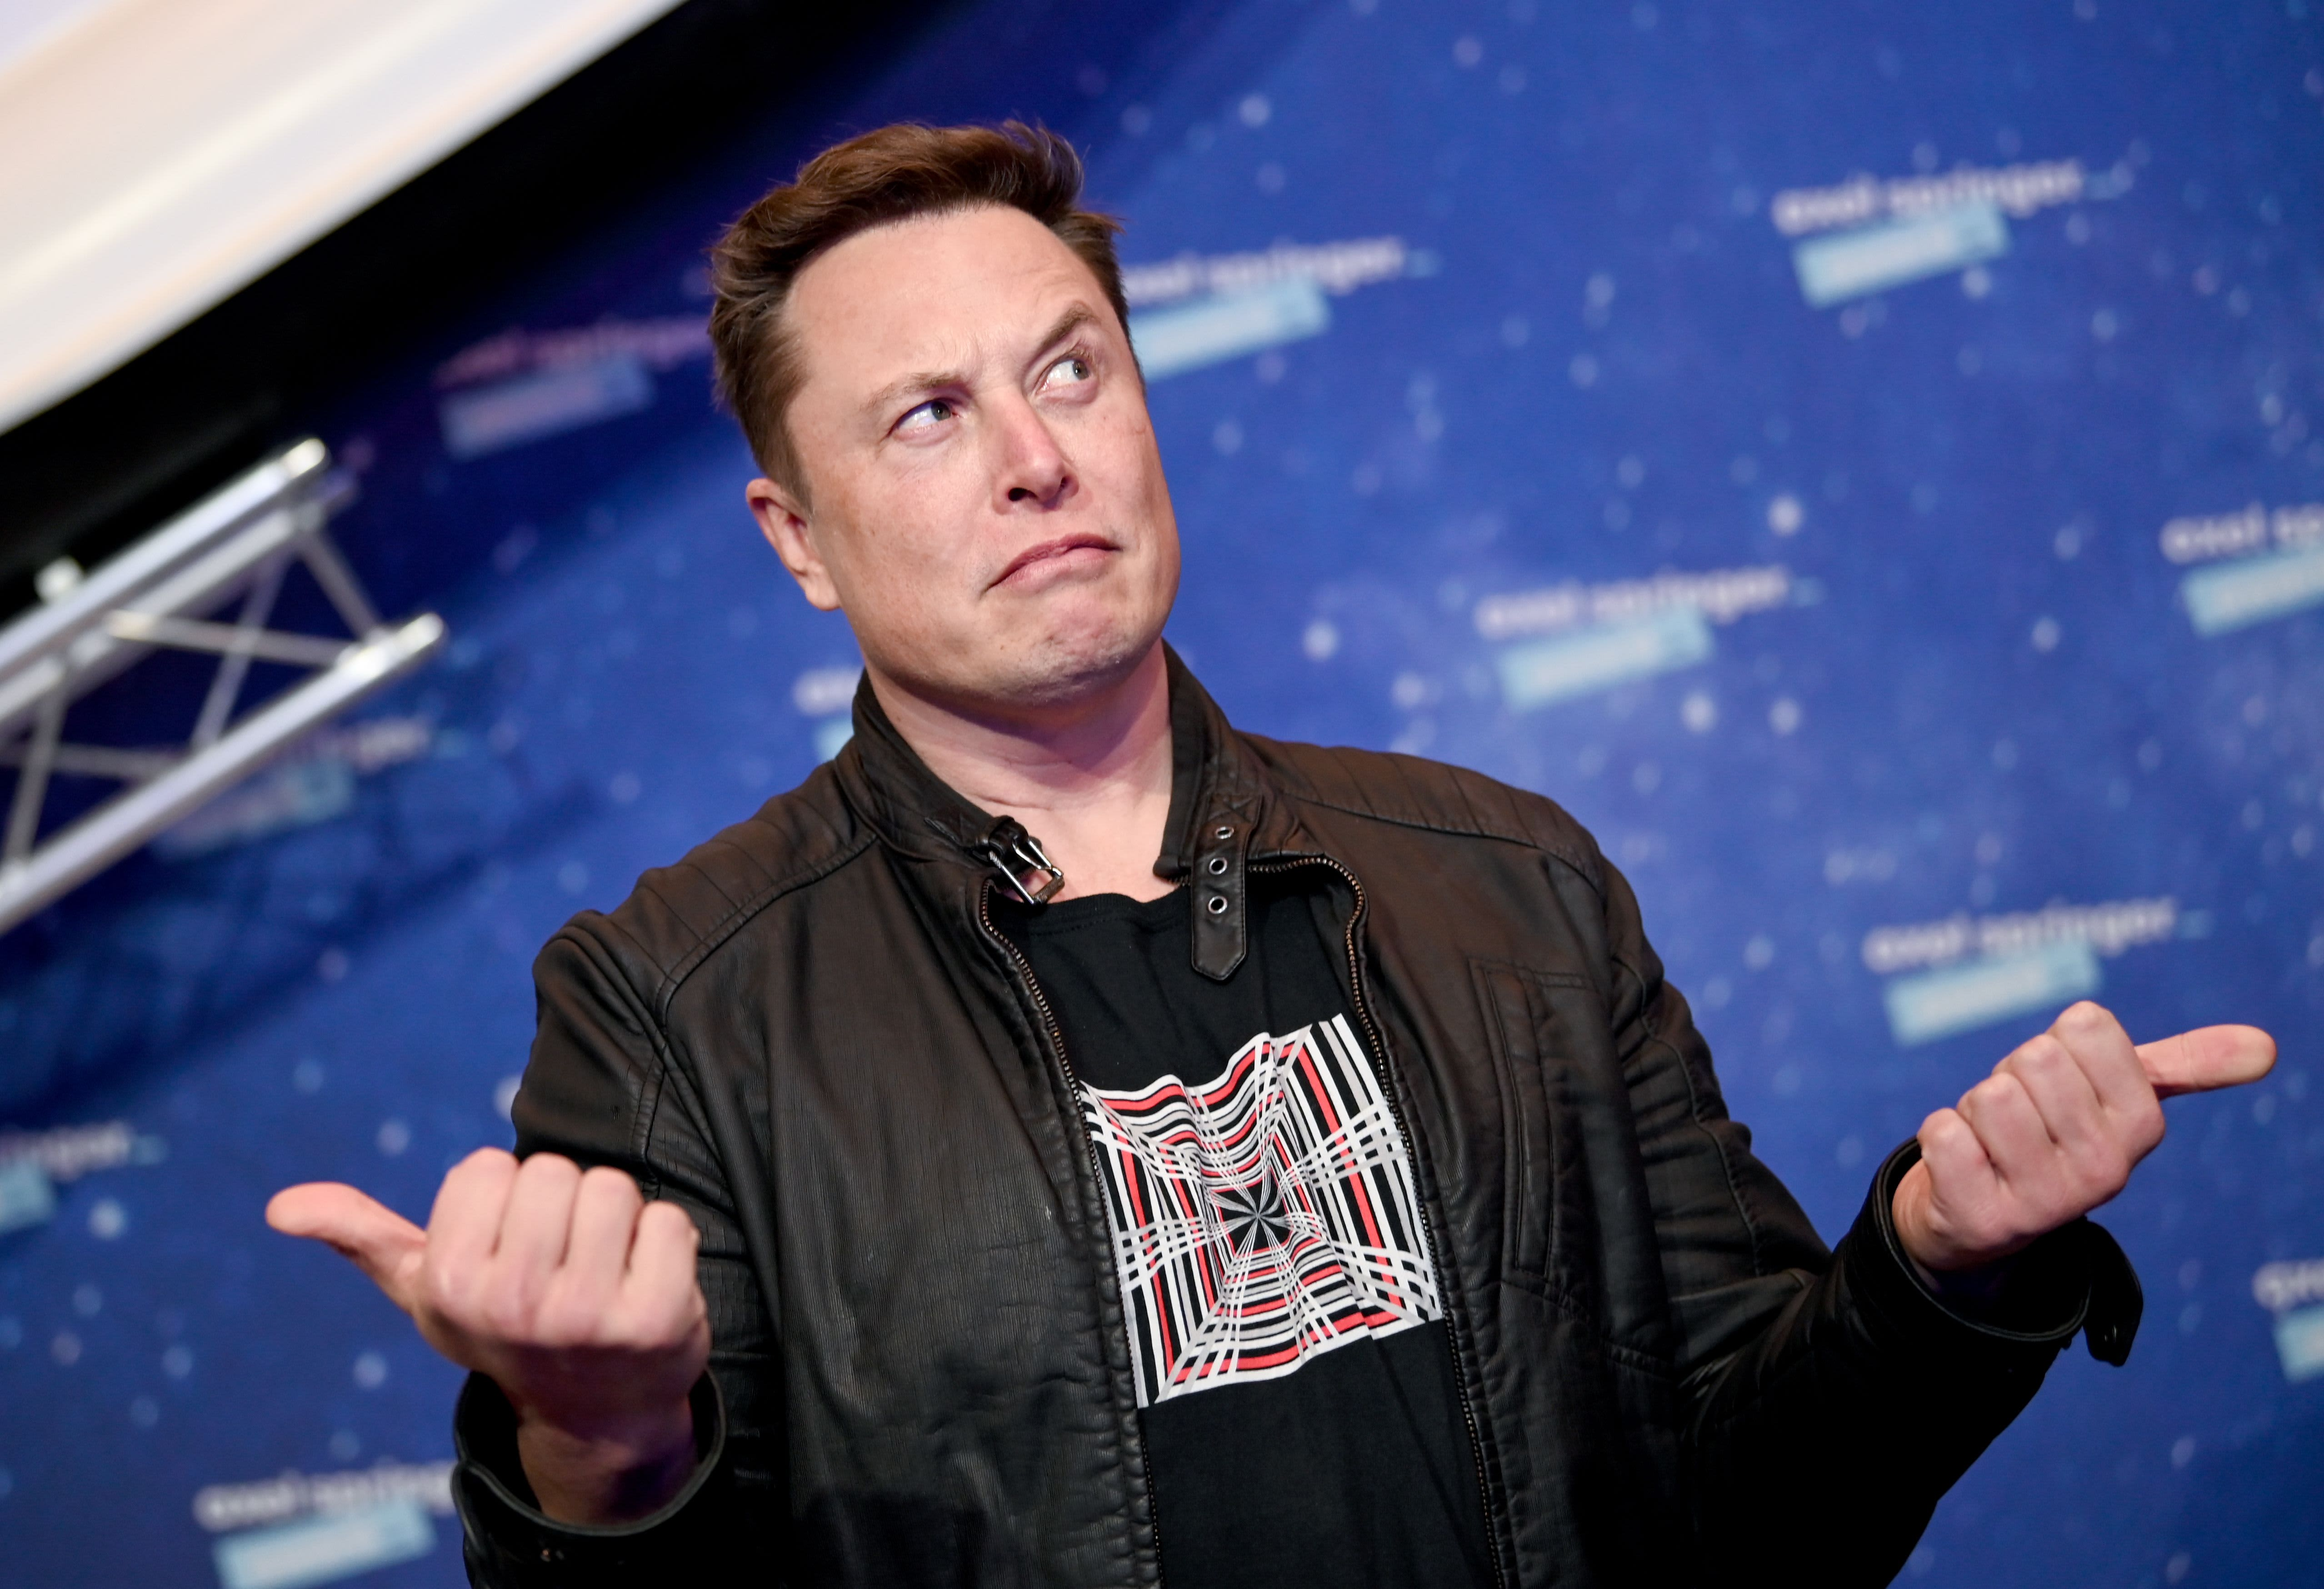 Elon Musk's dogecoin tweets are worrying and people will lose money bitcoin bulls say – CNBC